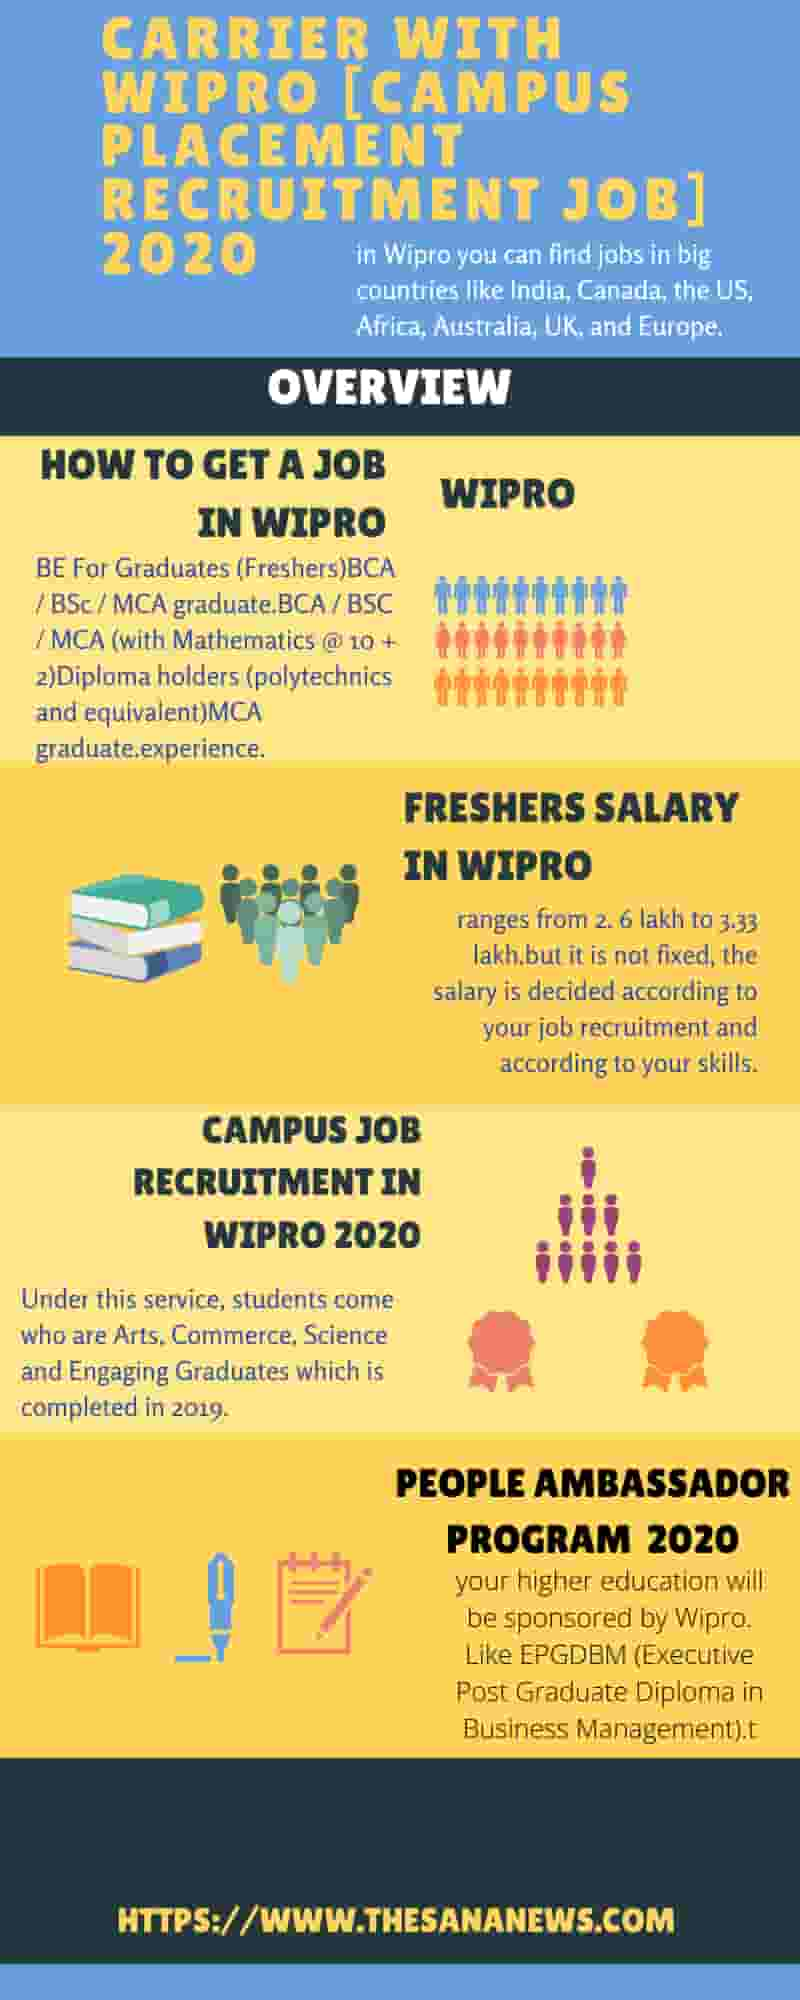 Carrier With Wipro [Campus Placement Recruitment Jobs] 2020